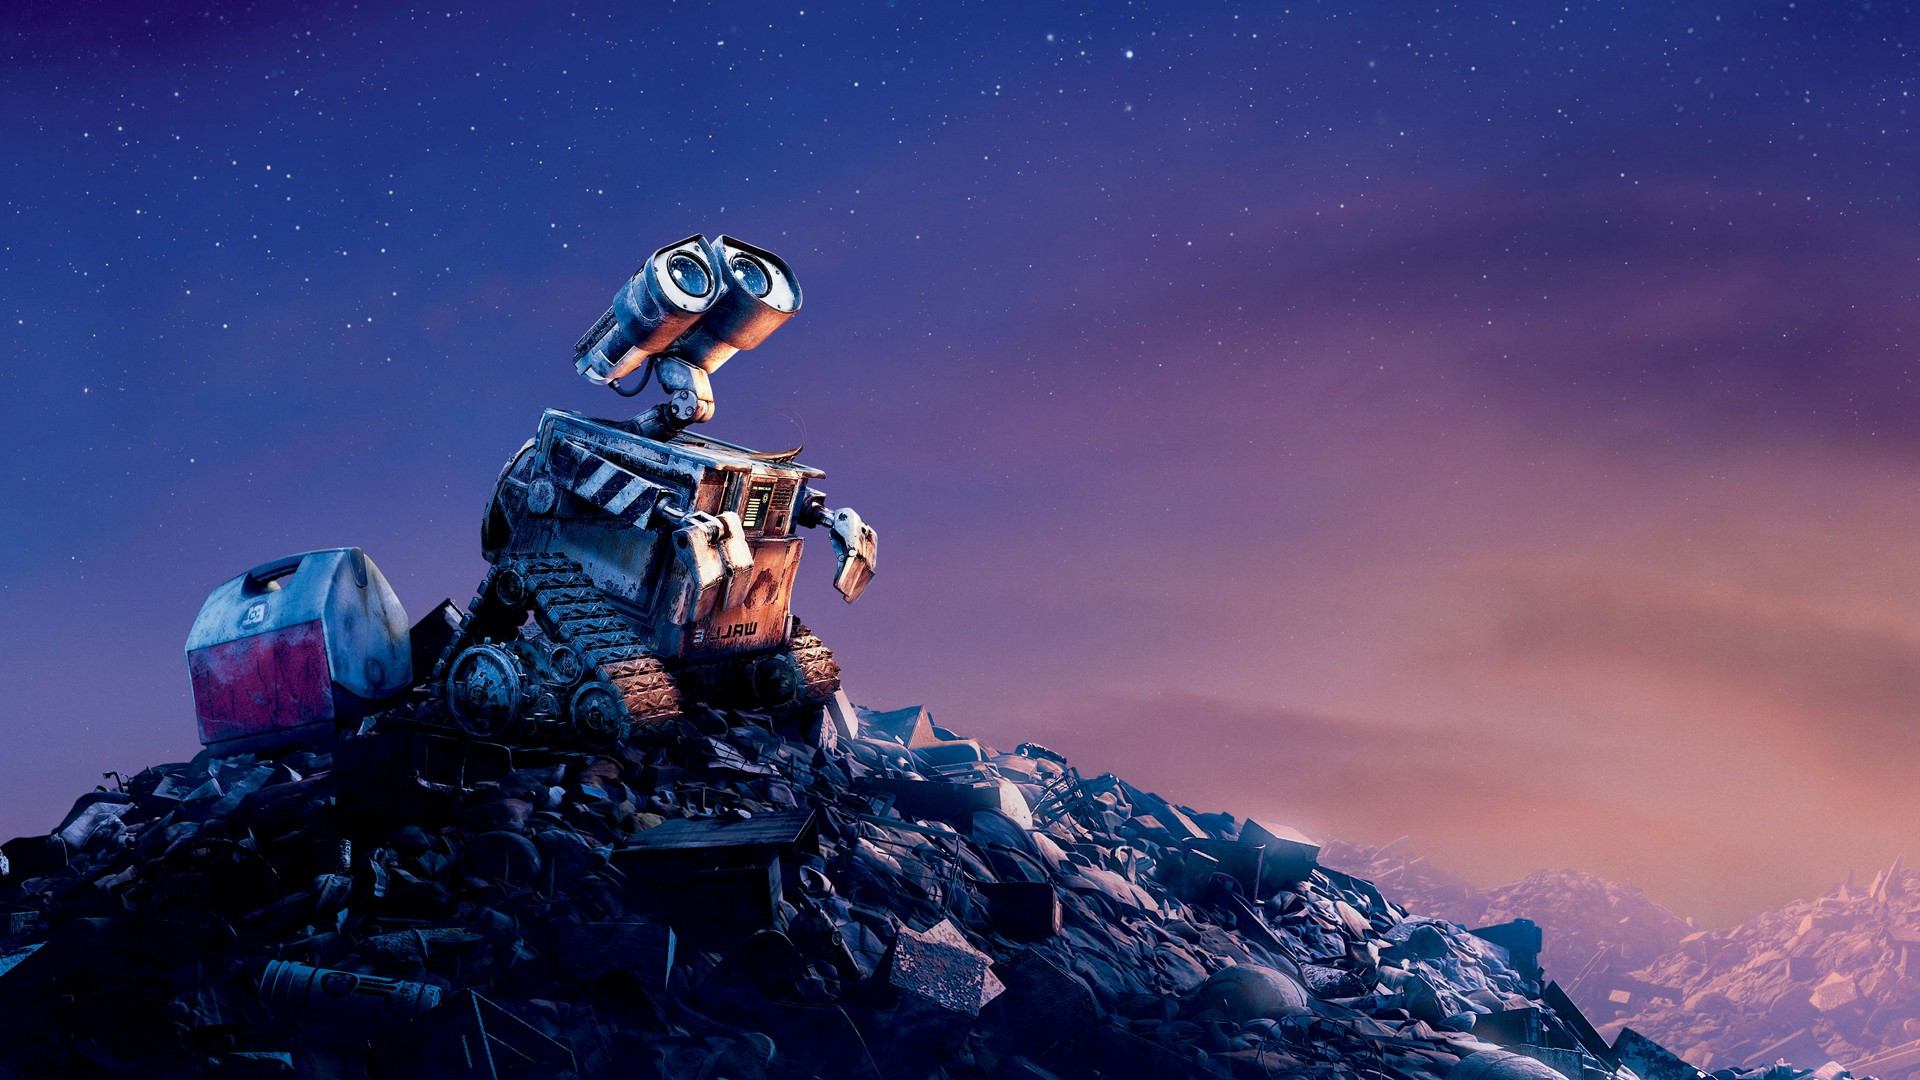 Wall e hd wallpapers Wallpapers for the wall